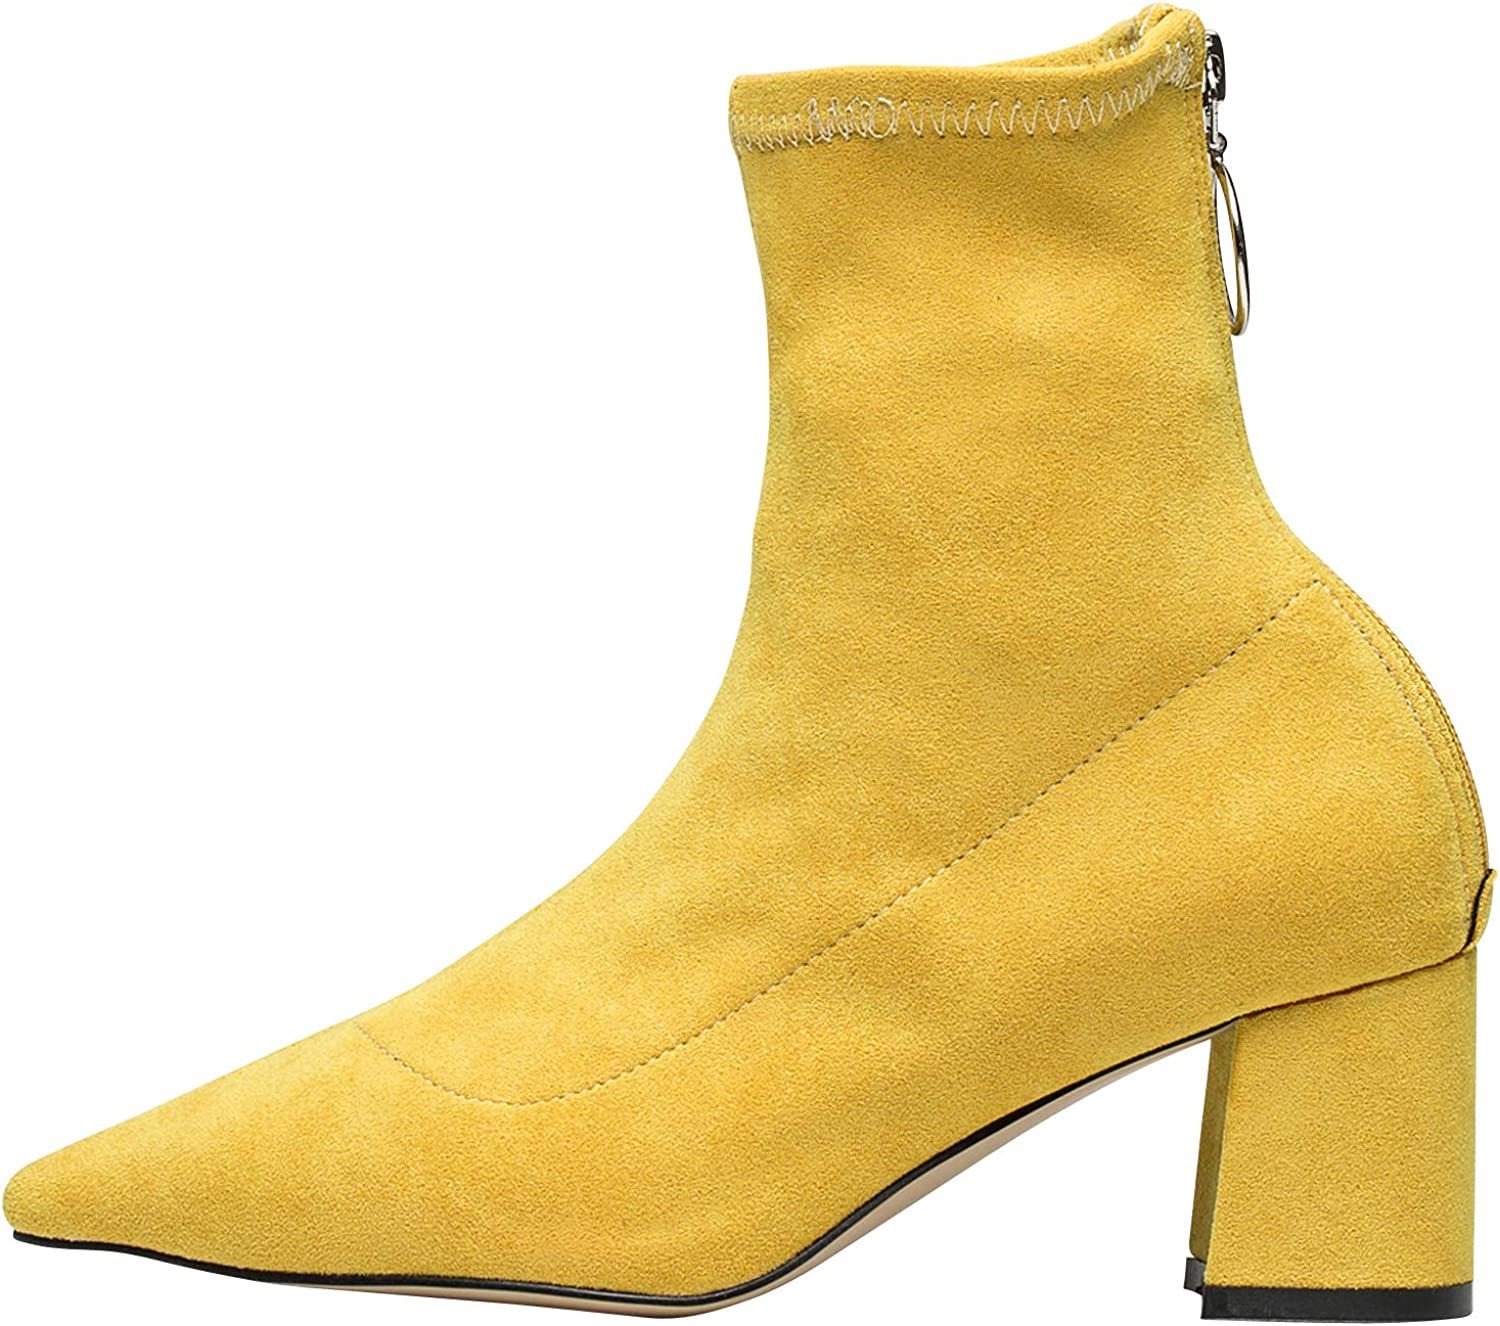 AnnaKastle Womens Pointy Toe color Ankle Boots Fashion Bootie